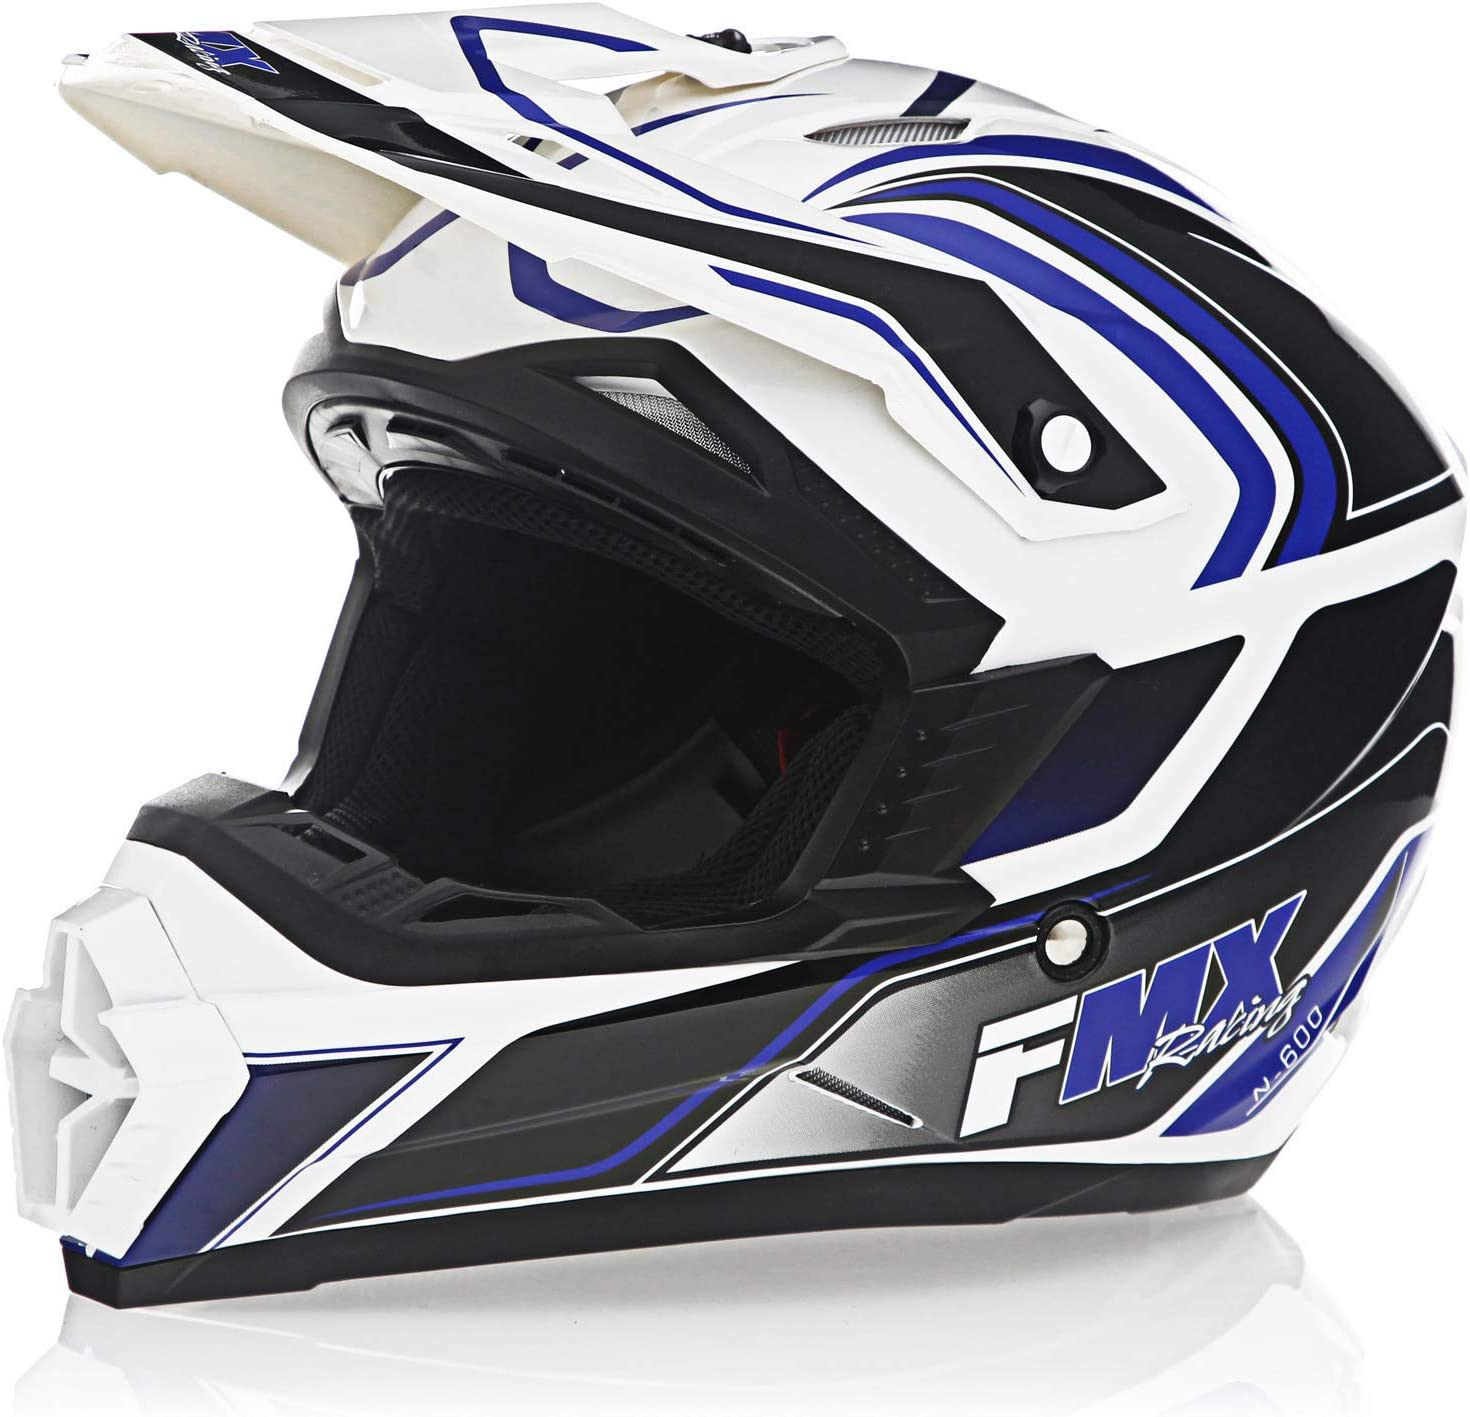 FMX Adult Motocross Dirt Bike Approv Off-Road Motorcycle Max Online limited product 68% OFF DOT ATV